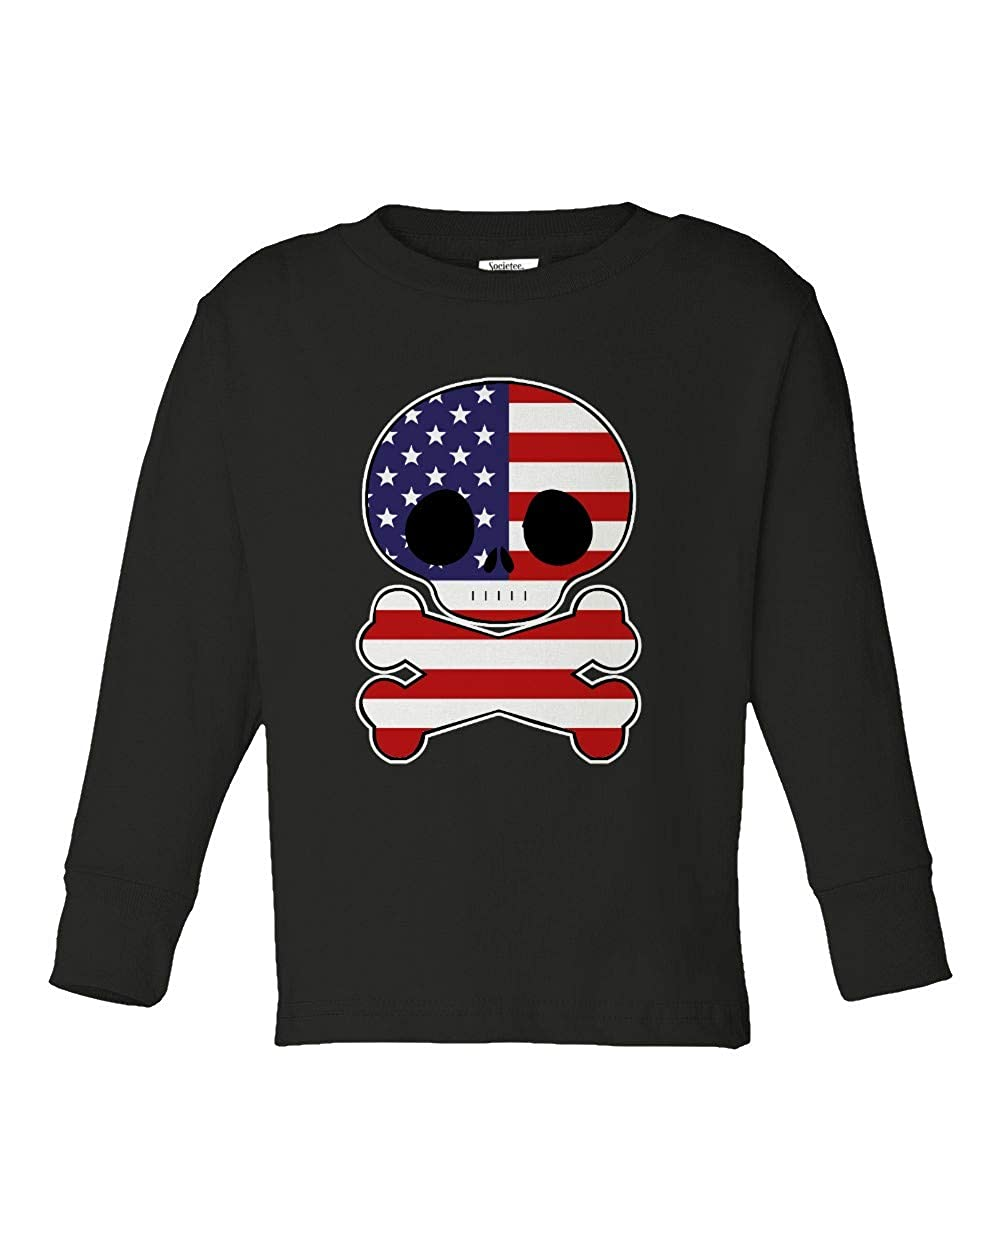 Societee American Flag Skull Cool Girls Boys Toddler Long Sleeve T-Shirt